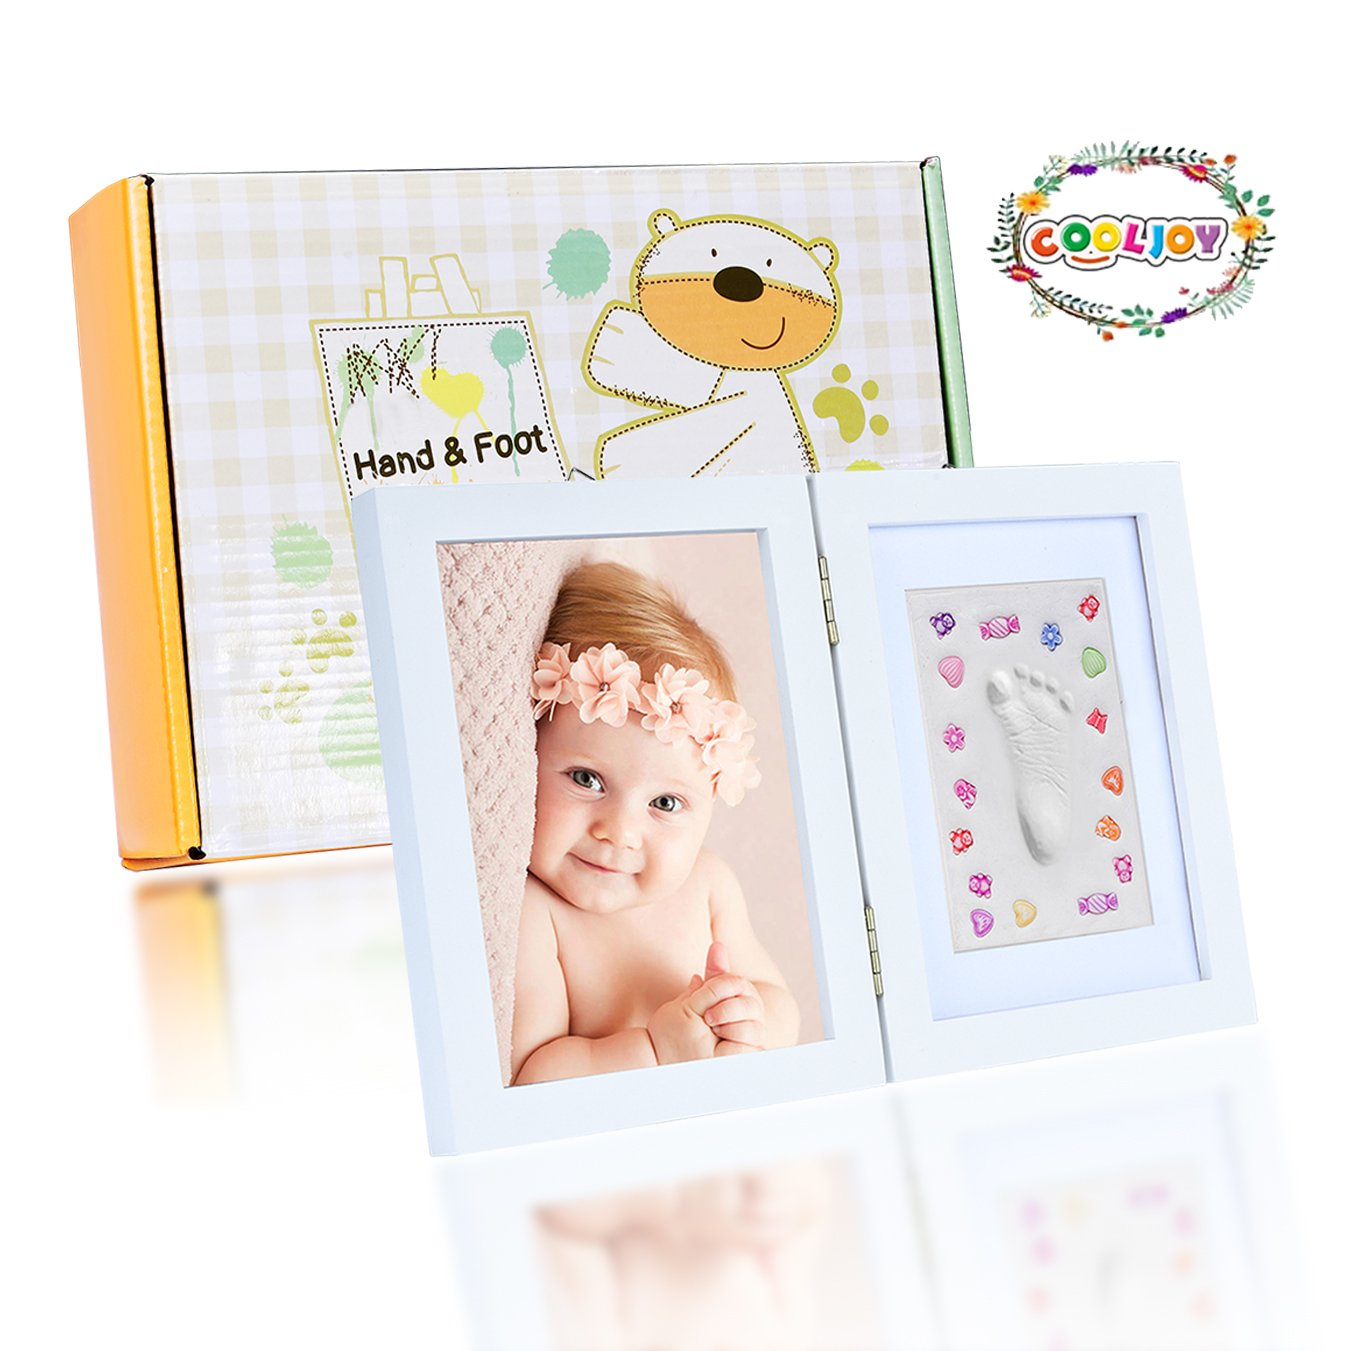 Baby Hand and Footprint Picture Frame Kit - Cooljoy Memorable Keepsakes Gift for New Born, Baby Shower or Christening Gift, Toddlers Birthday presents Koooper